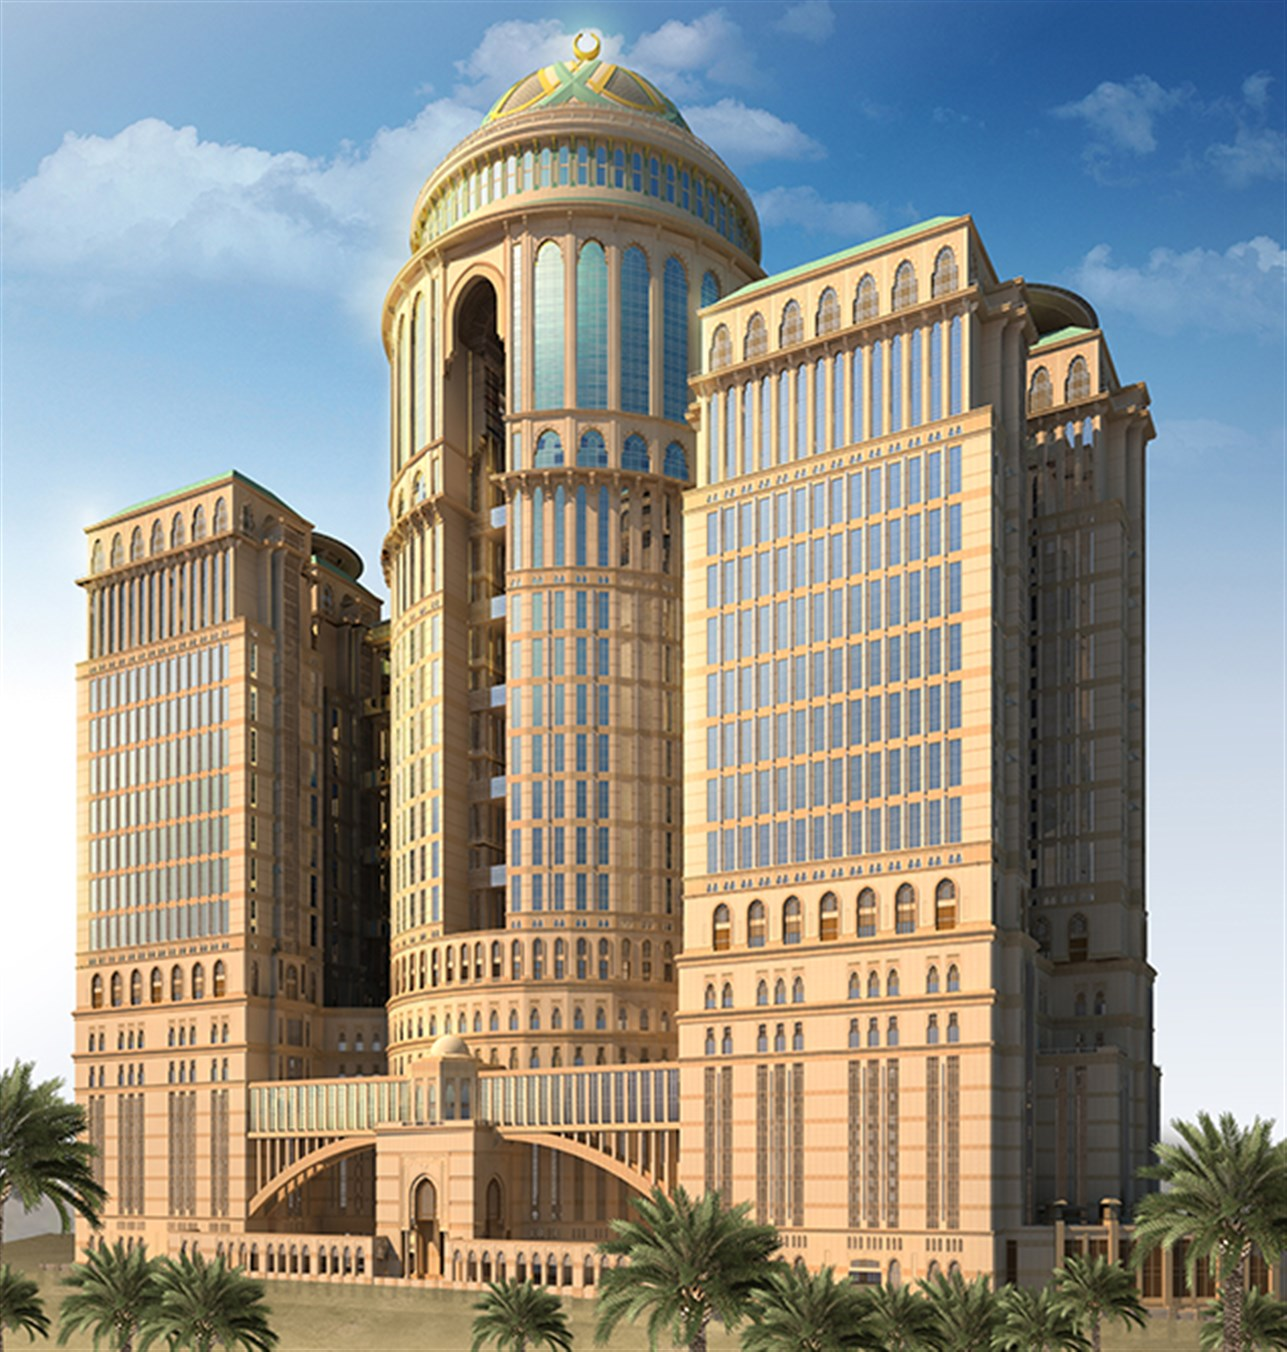 Saudi Arabia: World's largest hotel being built in holy ...